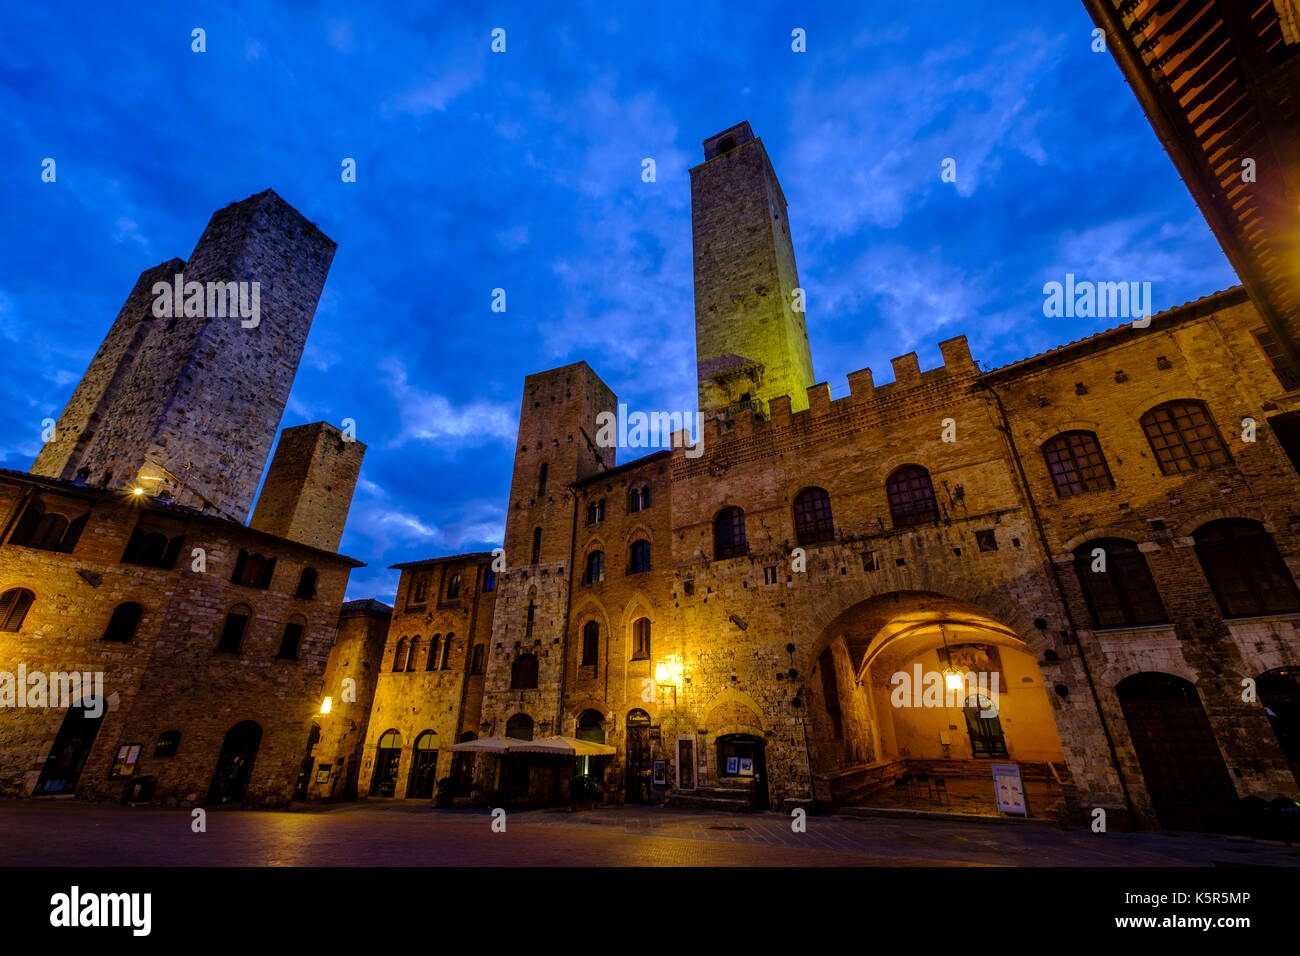 Old towers encircle the Piazza Duomo in the middle of the medieval town, illuminated at night - Stock Image